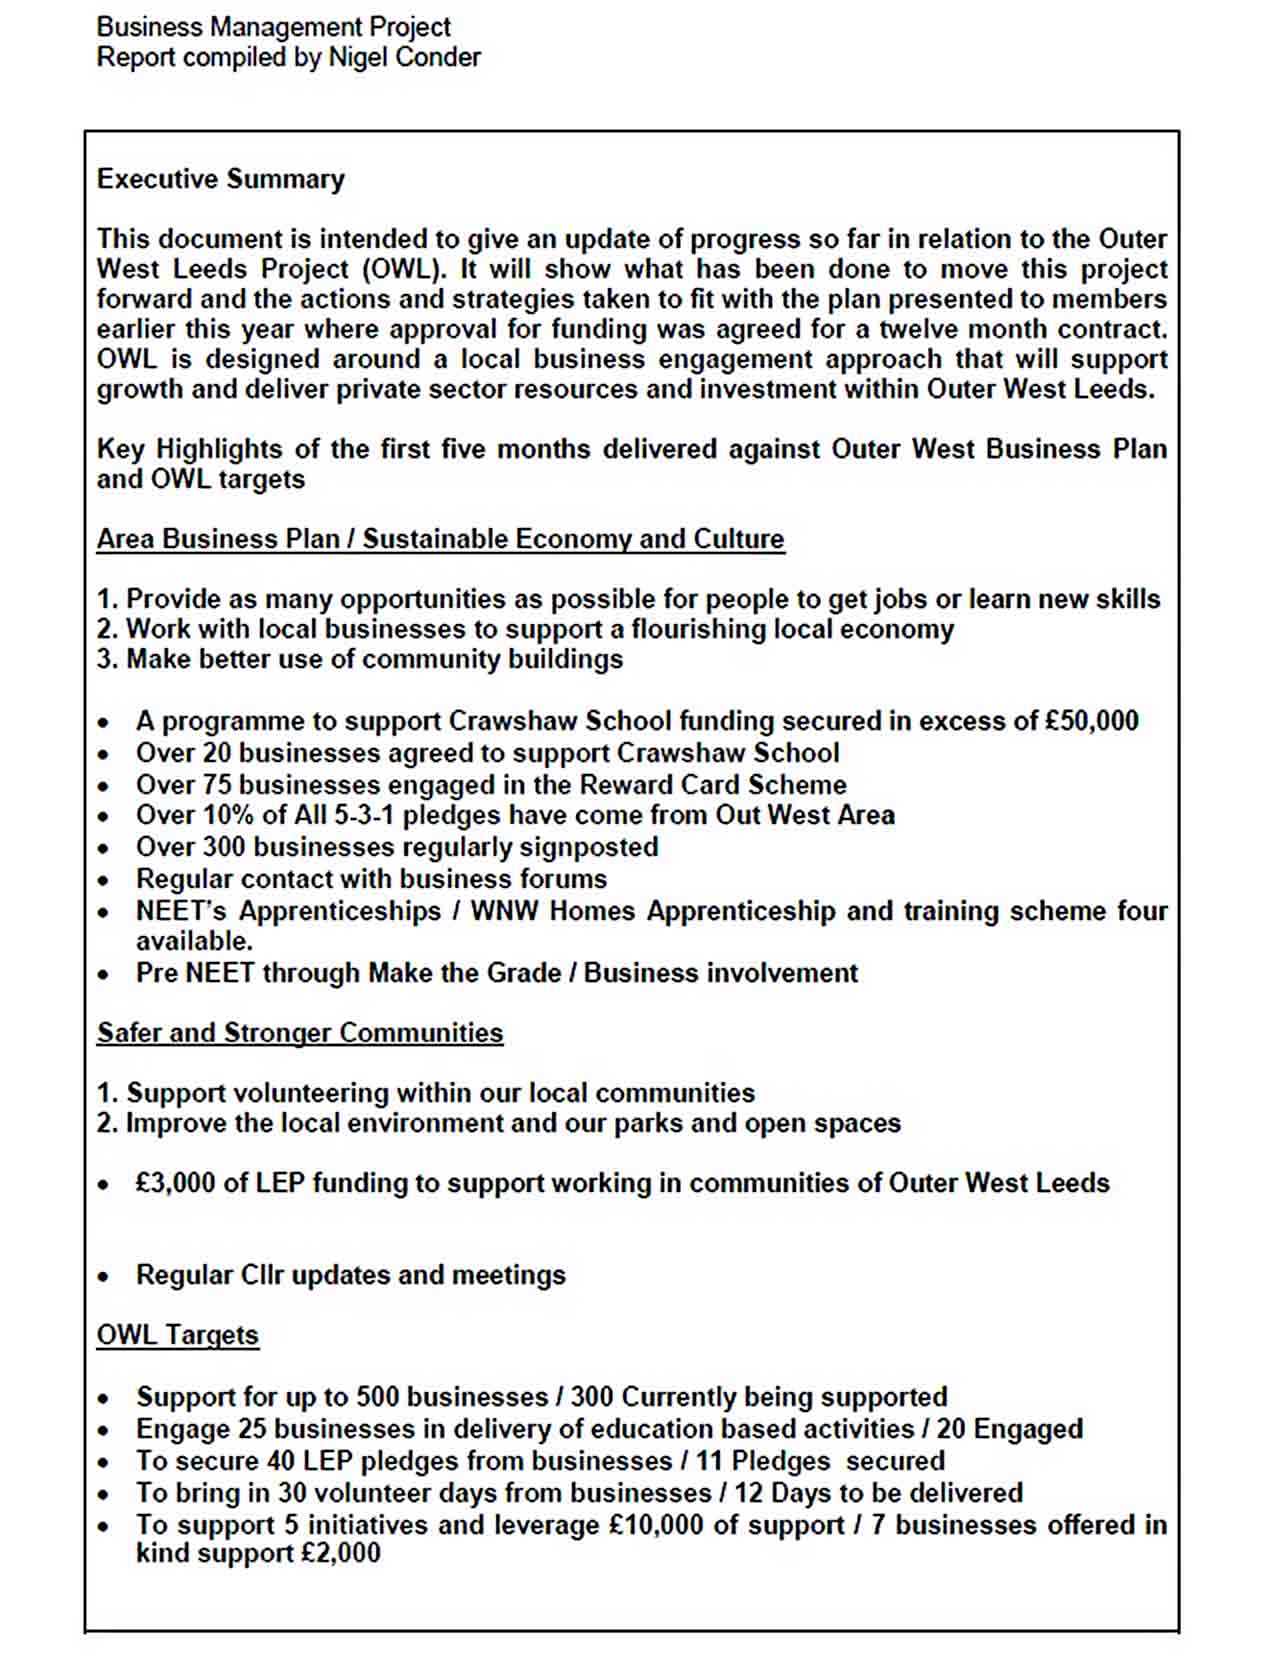 Templates Business Management Project Report